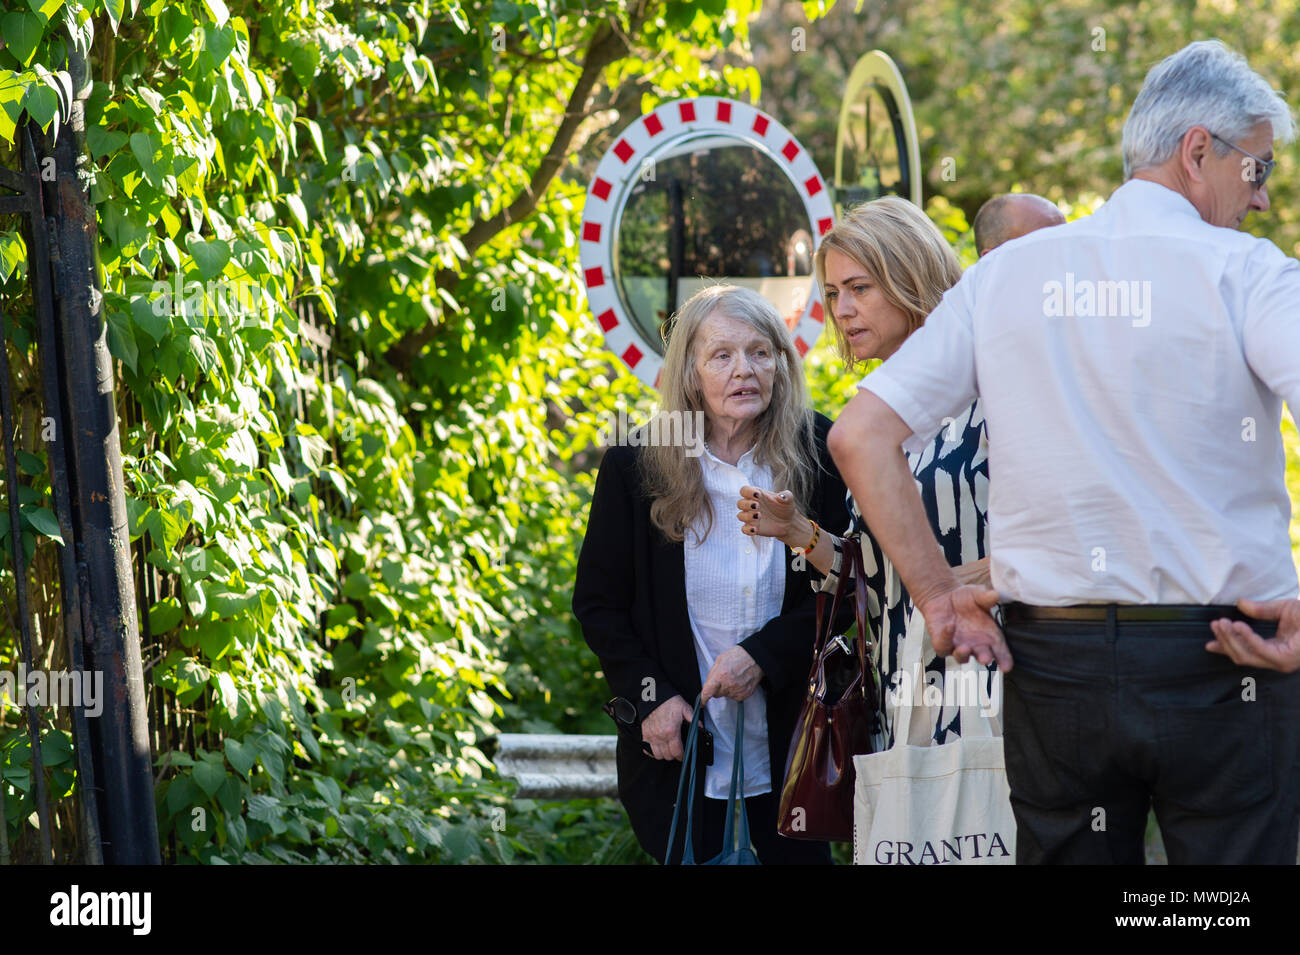 Stockholm, Sweden, May 31, 2018. Crisis in the Swedish Academy. Members of the Swedish Academy arrive at Bergsgarden, Djurgarden, Stockholm for late dinner after previous meetings at the Swedish Academy in the Old town, Stockholm. Kristina Lugn and Jayne Svenungsson arrives. Credit: Barbro Bergfeldt/Alamy Live News - Stock Image